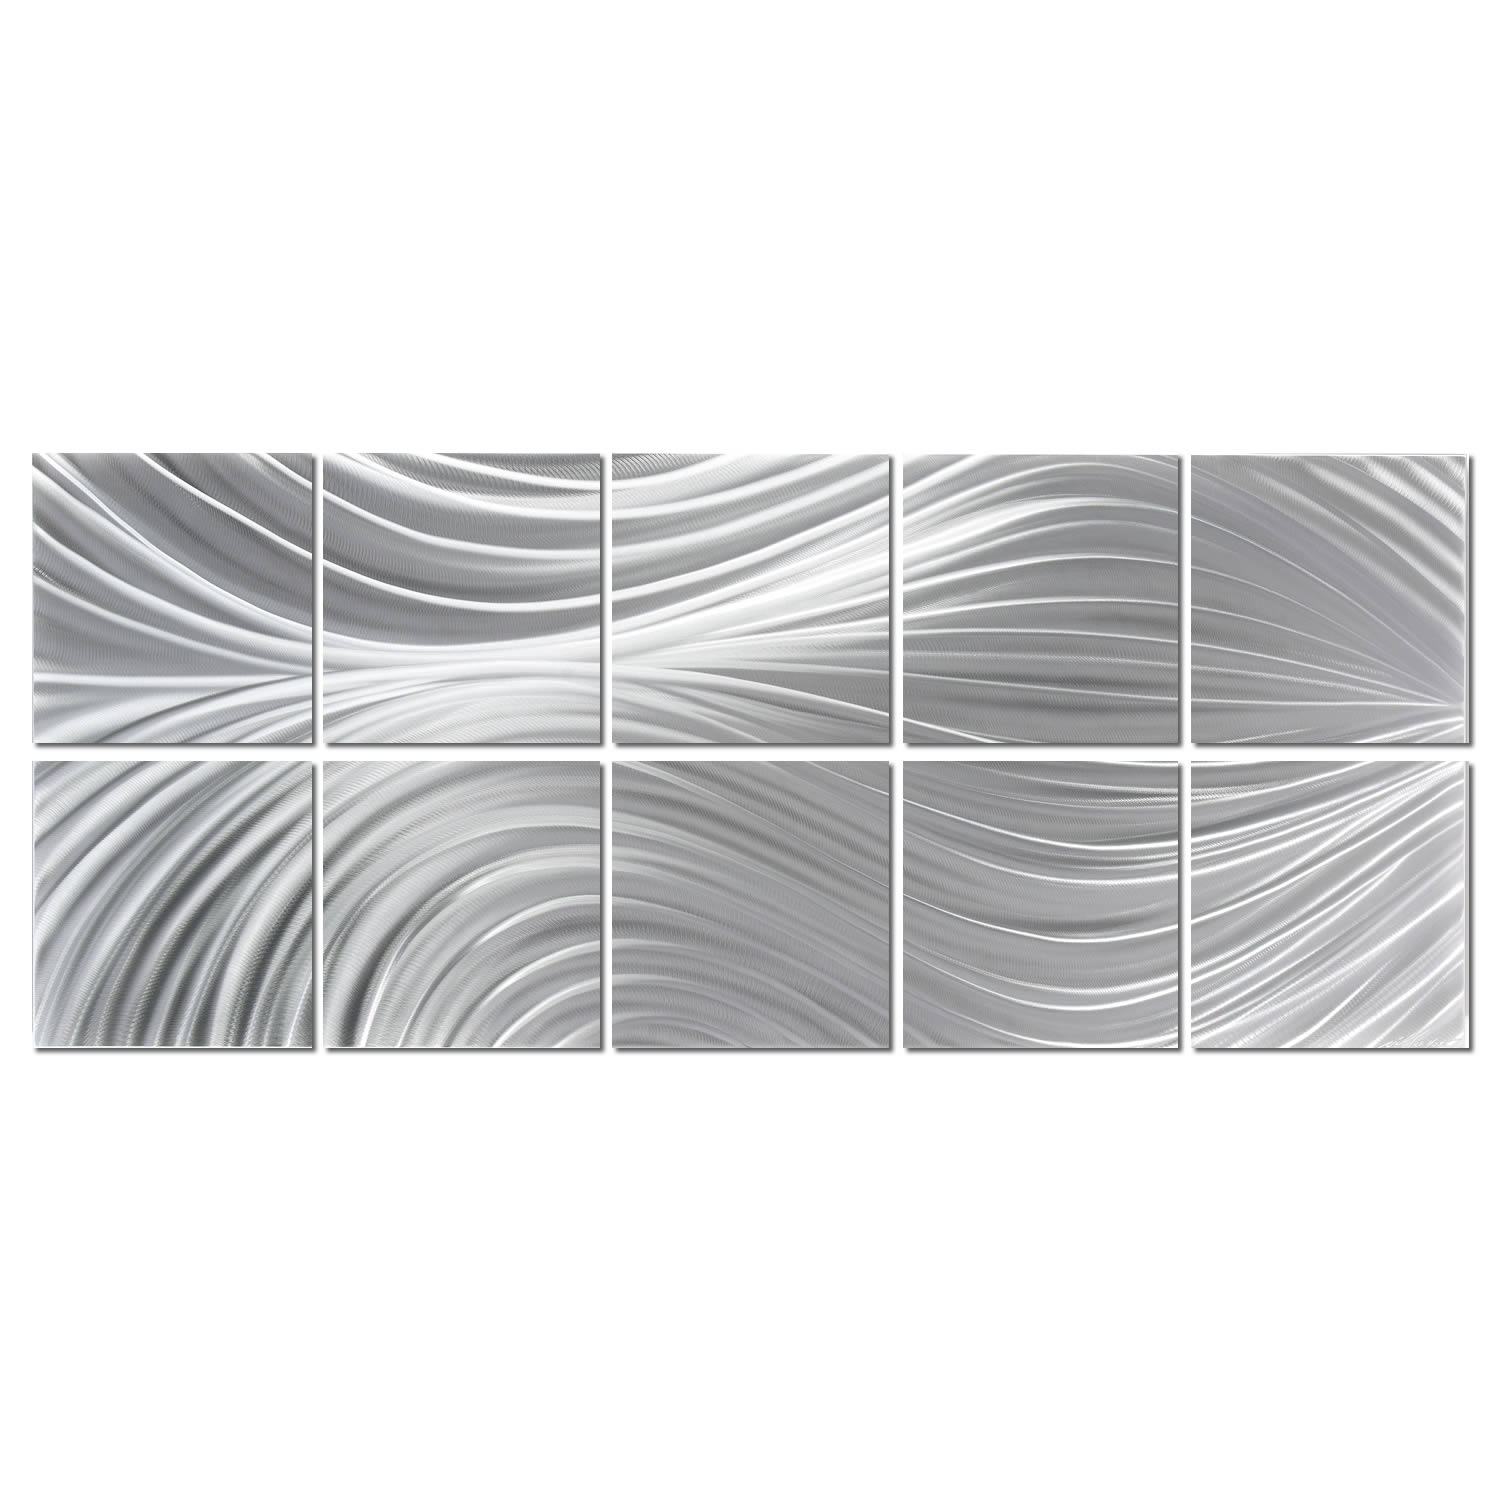 PASSING CURRENTS (10-PANEL) - Hand-Ground Metal Art by Nicholas Yust